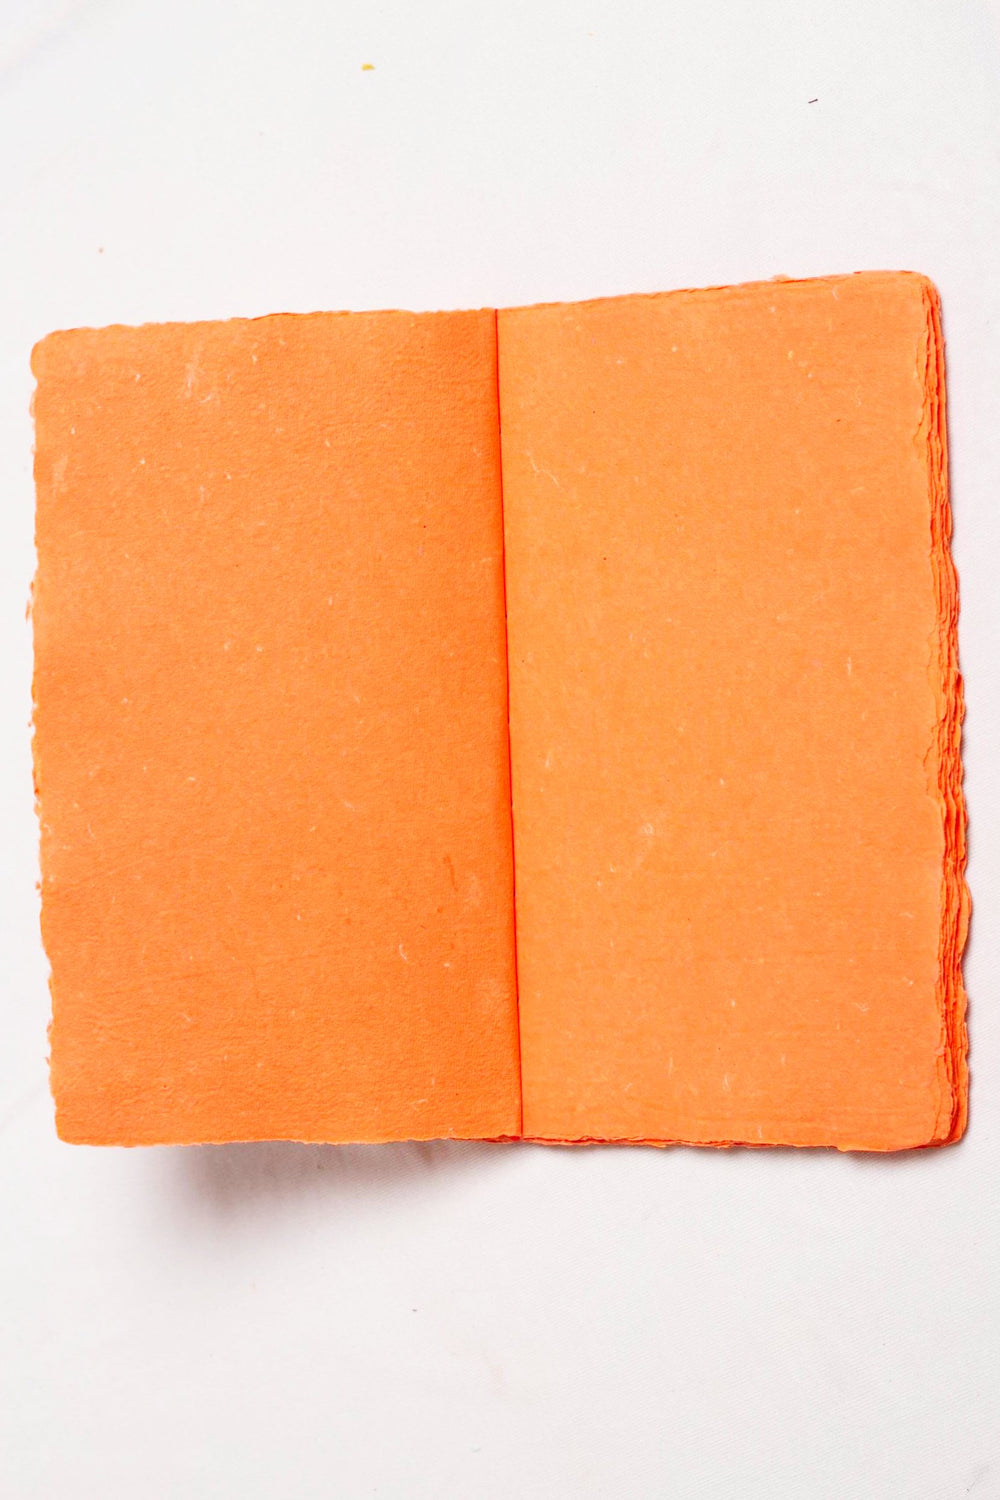 Orange deckle edge paper handstitched notebook